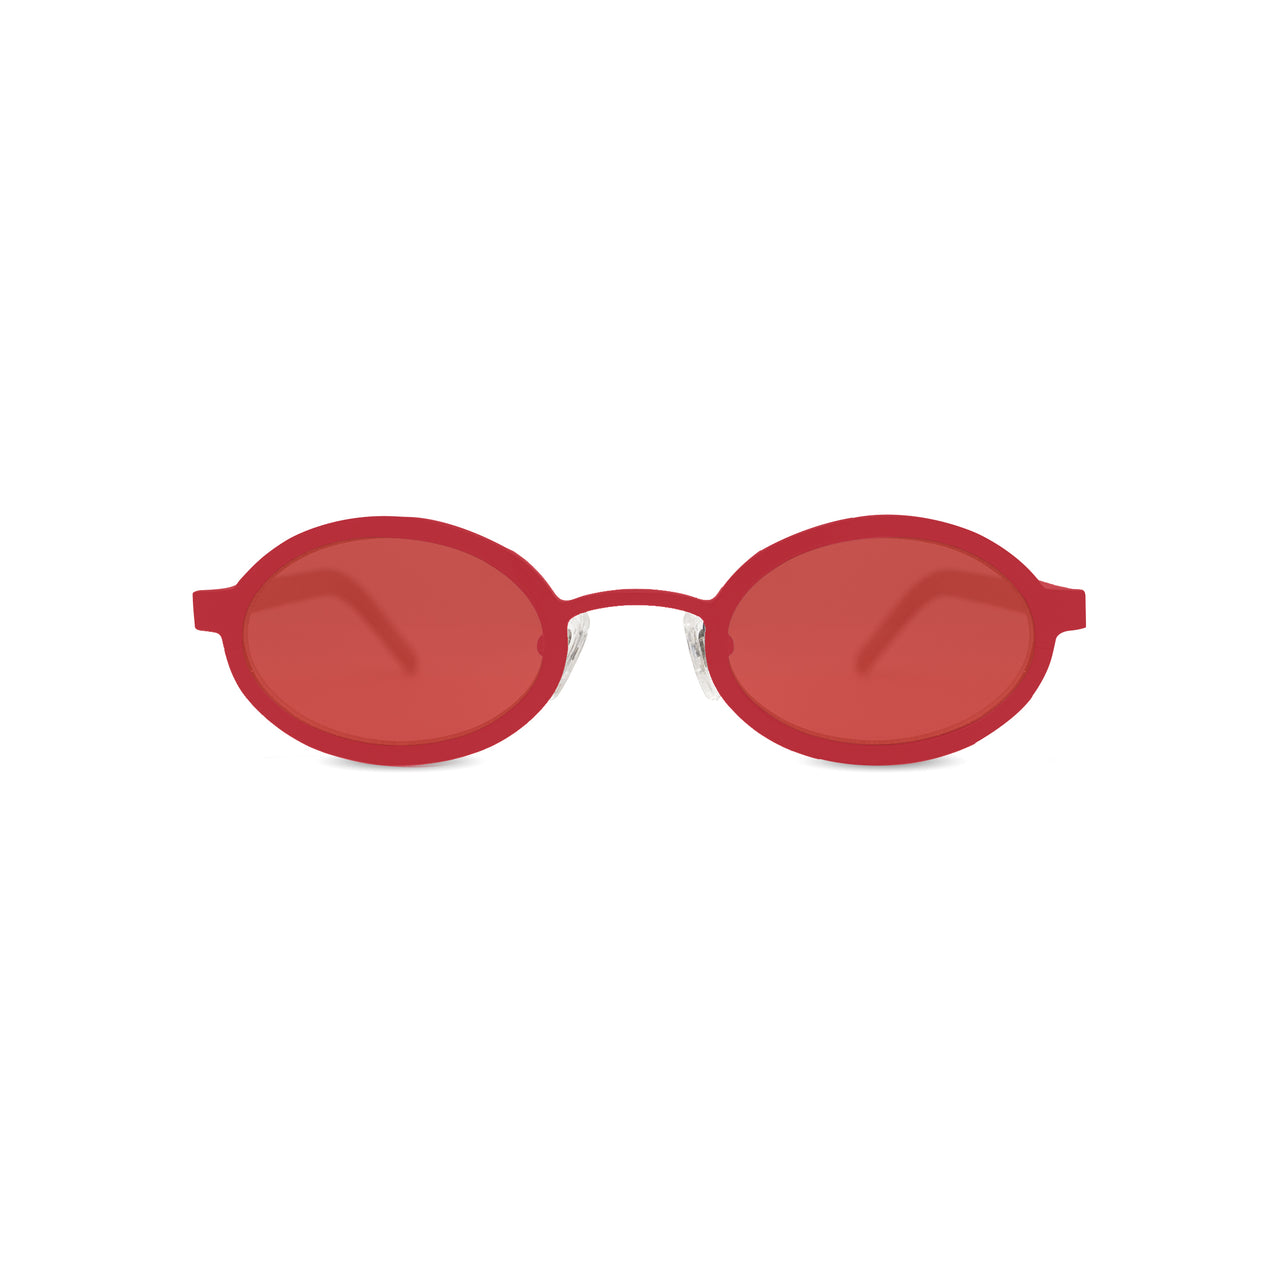 Metal / Horn. Scarlet / Blonde. Scarlet Lens. - BLYSZAK eyewear  - eyewear, optical, sunglasses